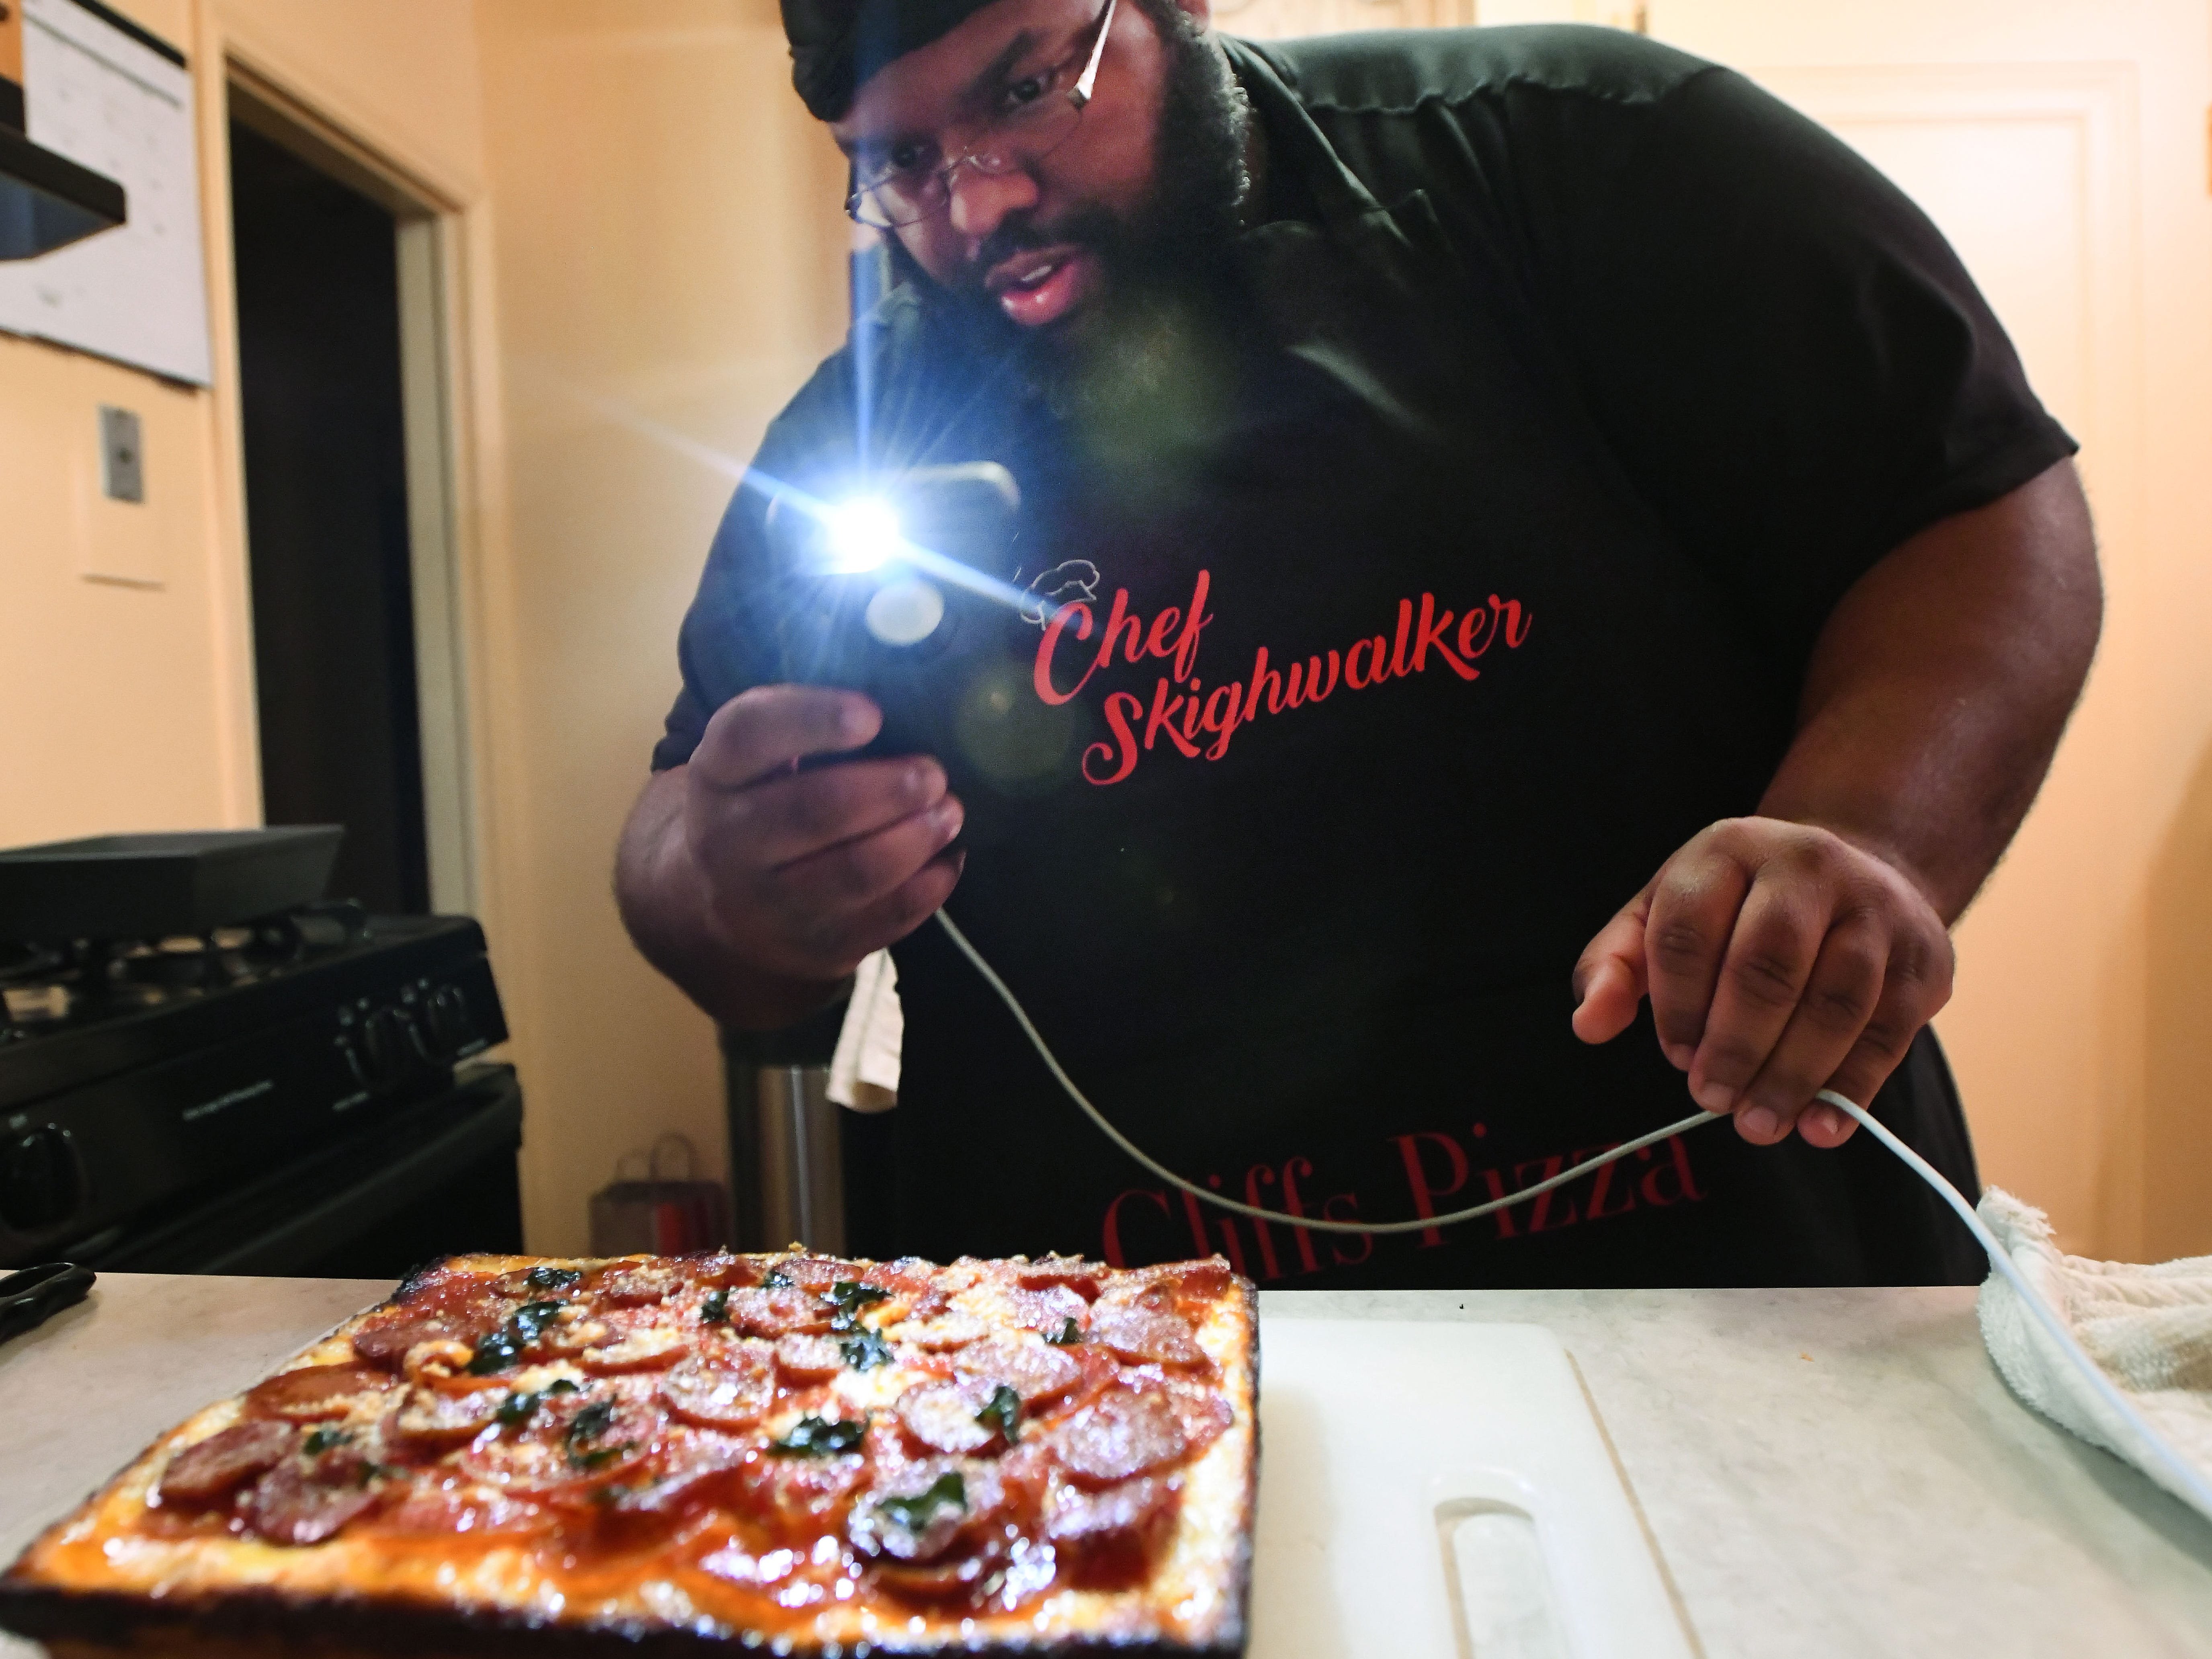 Cliff Skighwalker takes a picture of his pepperoni, Gyulai sausage, basil, aged parmesan pizza on a hand-made crust with homemade sauce at his Pontiac home for sale on Instagram.